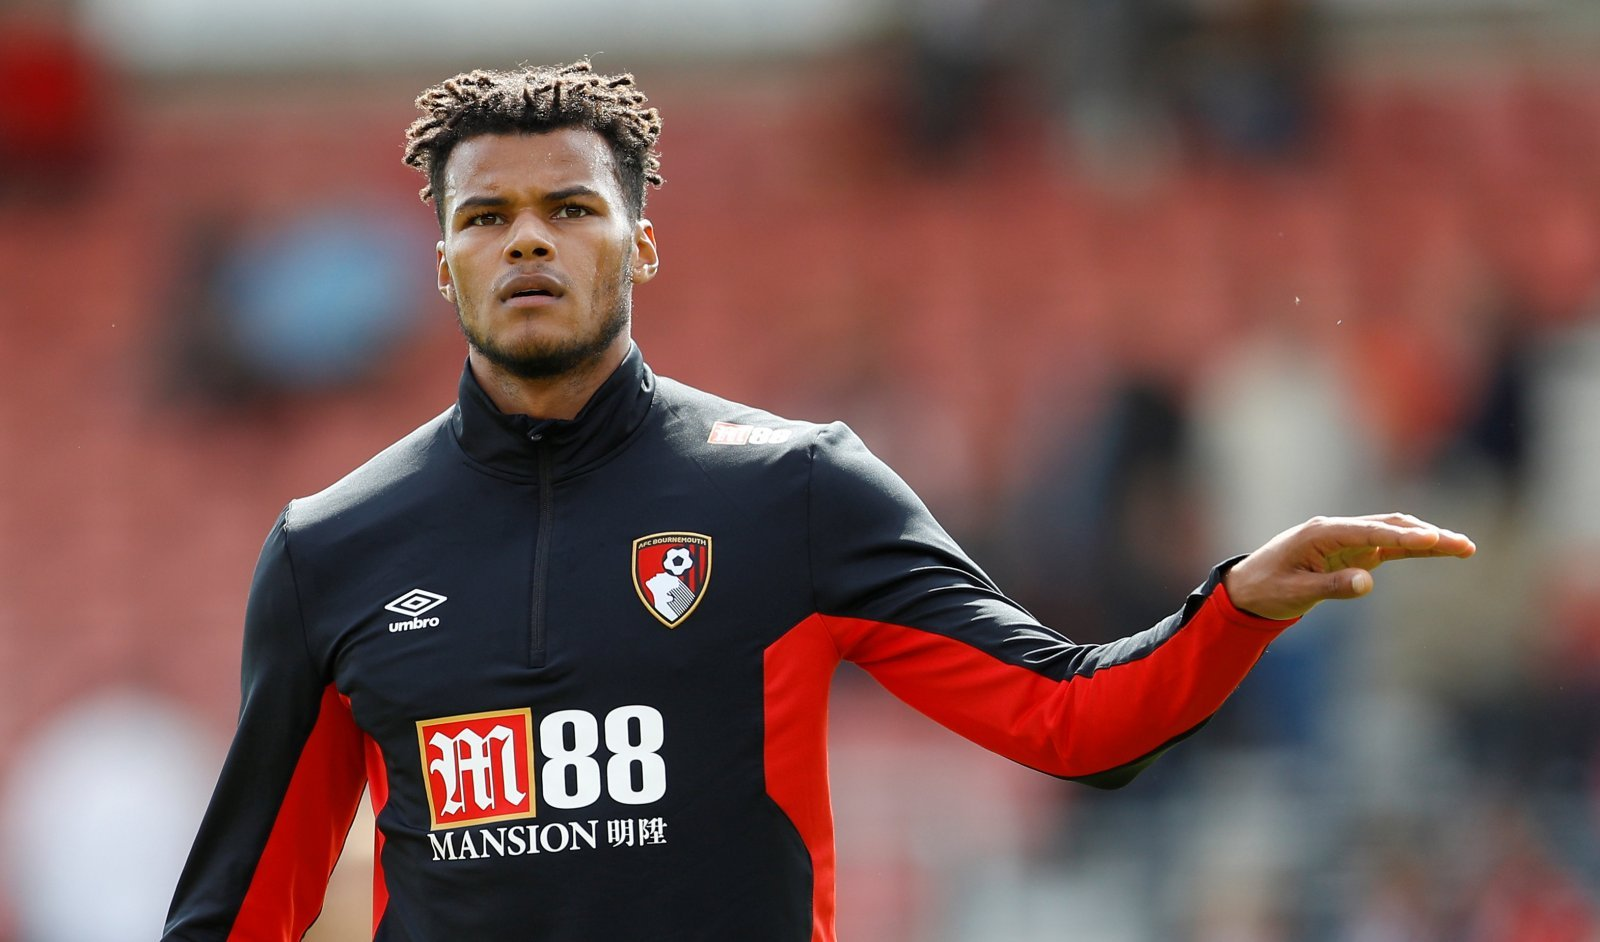 Aston Villa fans take to Twitter to call for Tyrone Mings deal